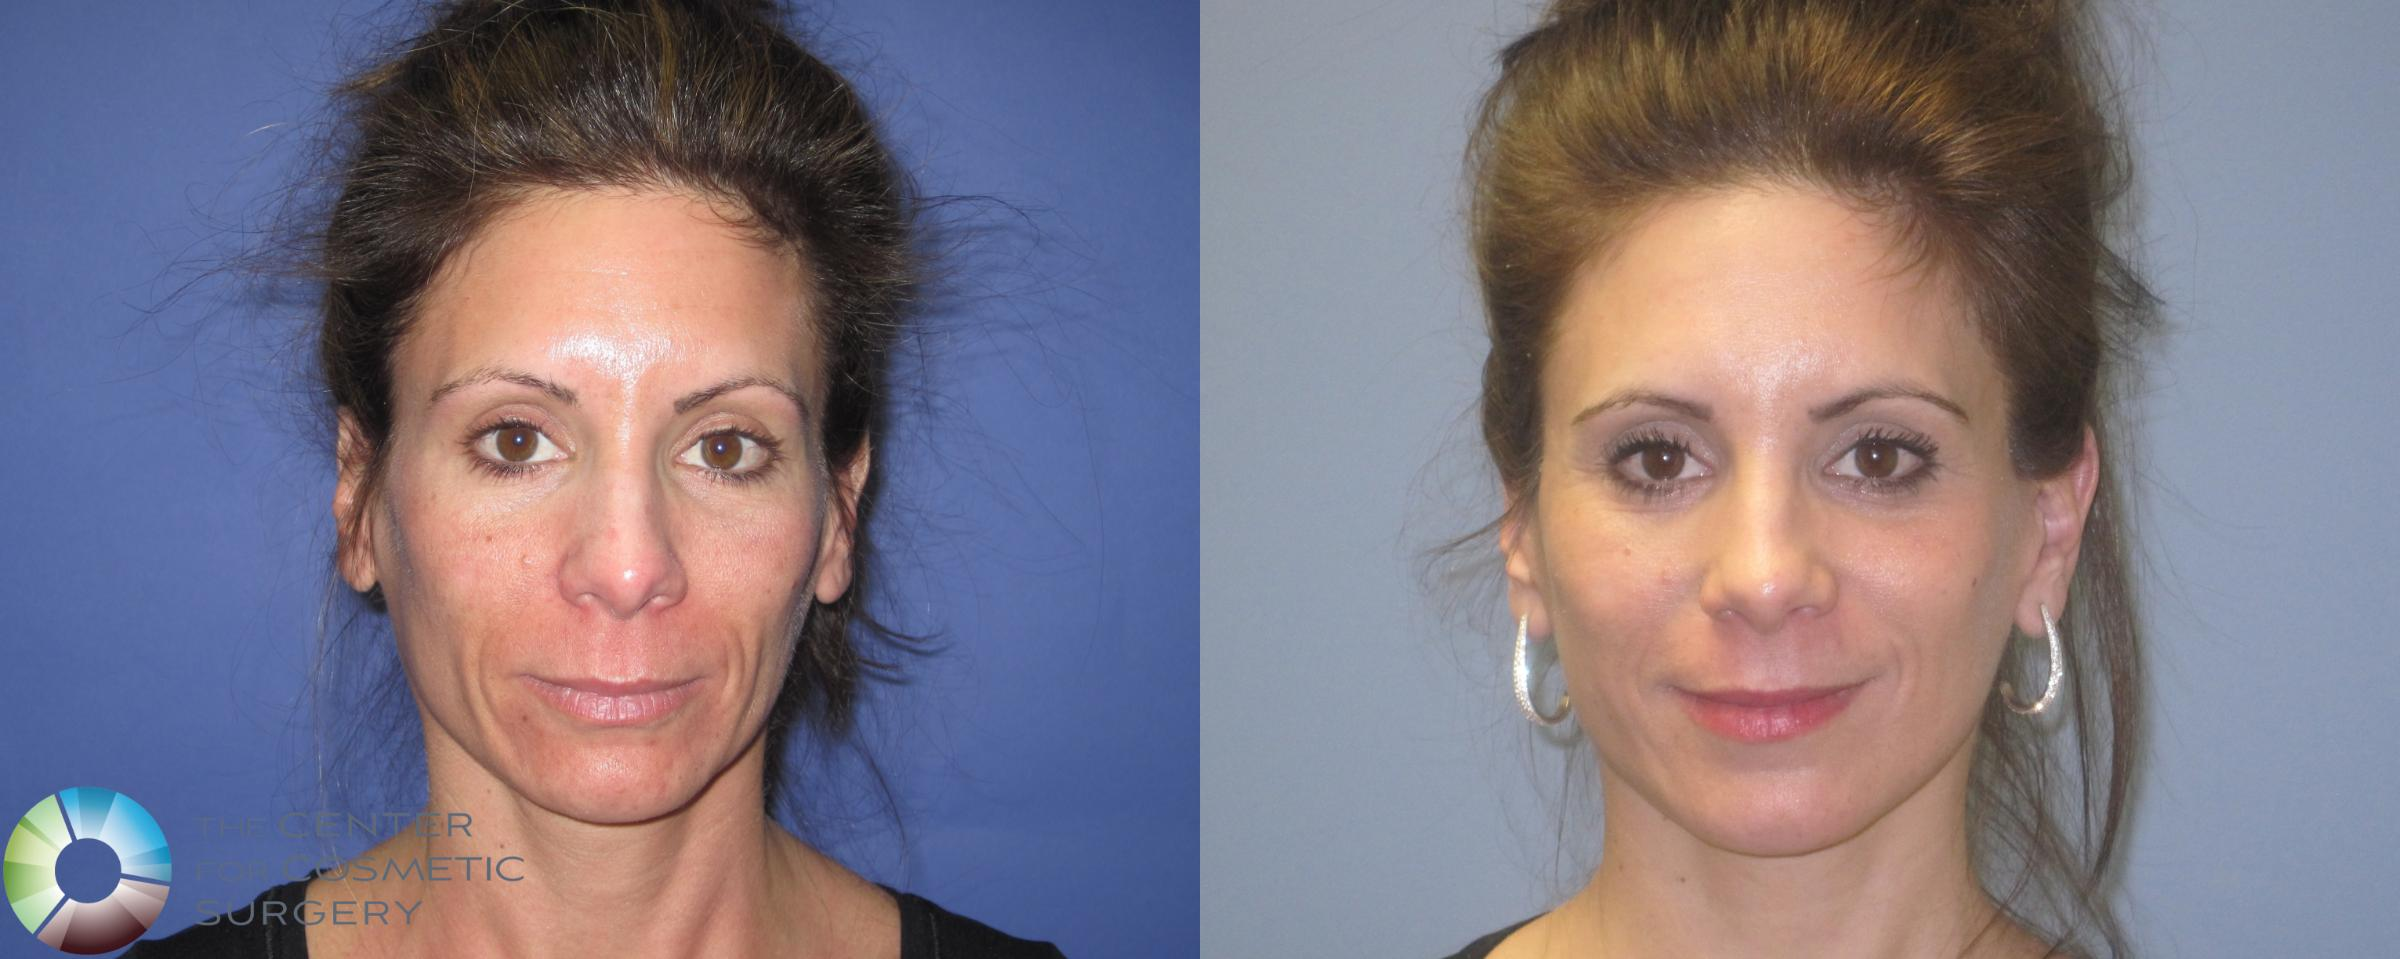 Laser Skin Resurfacing Case 462 Before & After View #1 | Golden, CO | The Center for Cosmetic Surgery